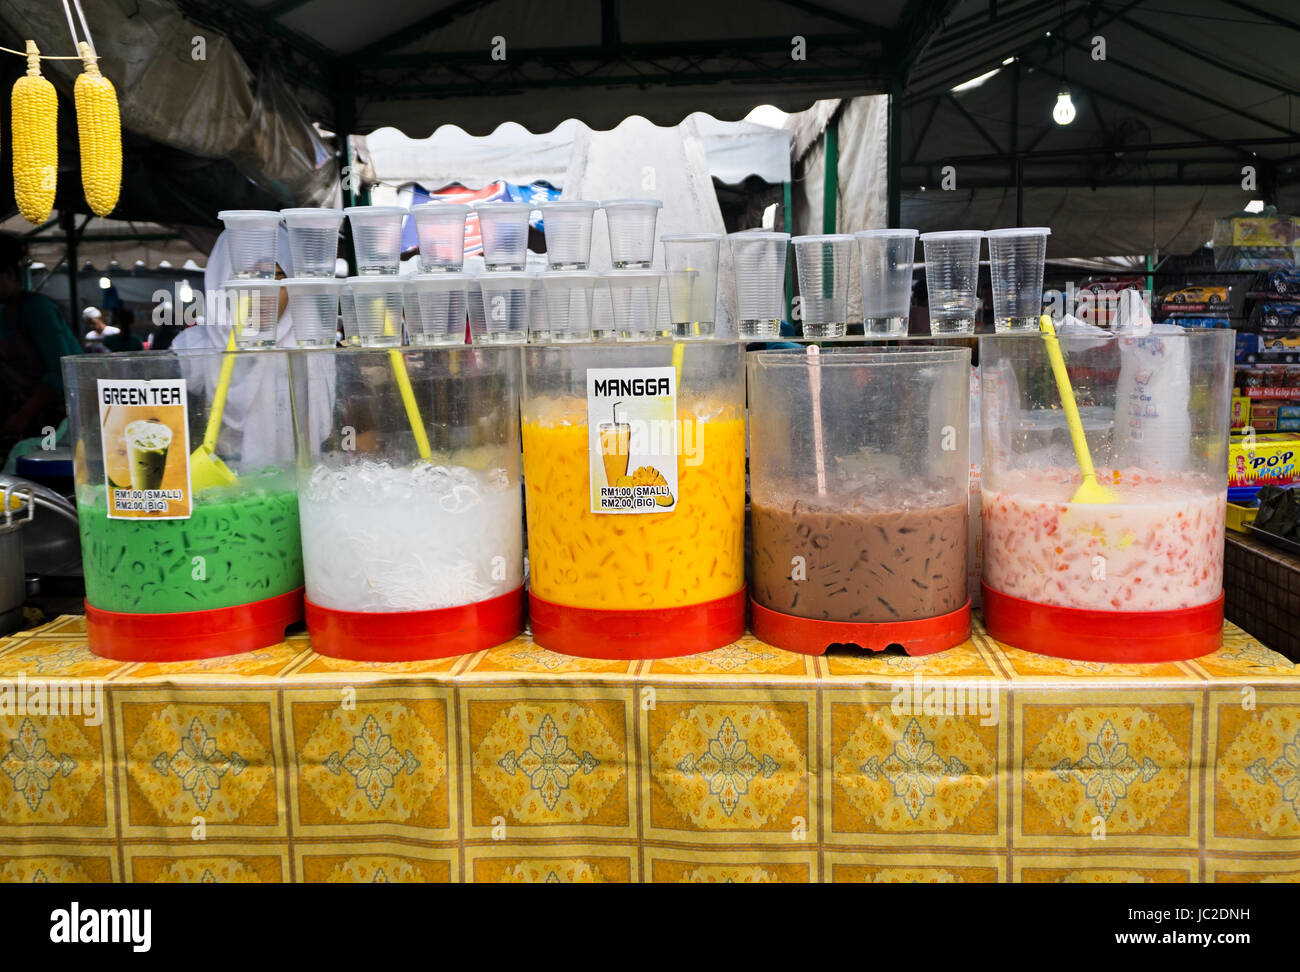 KOTA KINABALU, SABAH, MALAYSIA - JUNE 10, 2017: Night market stall selling variety of juices with different flavor. - Stock Image